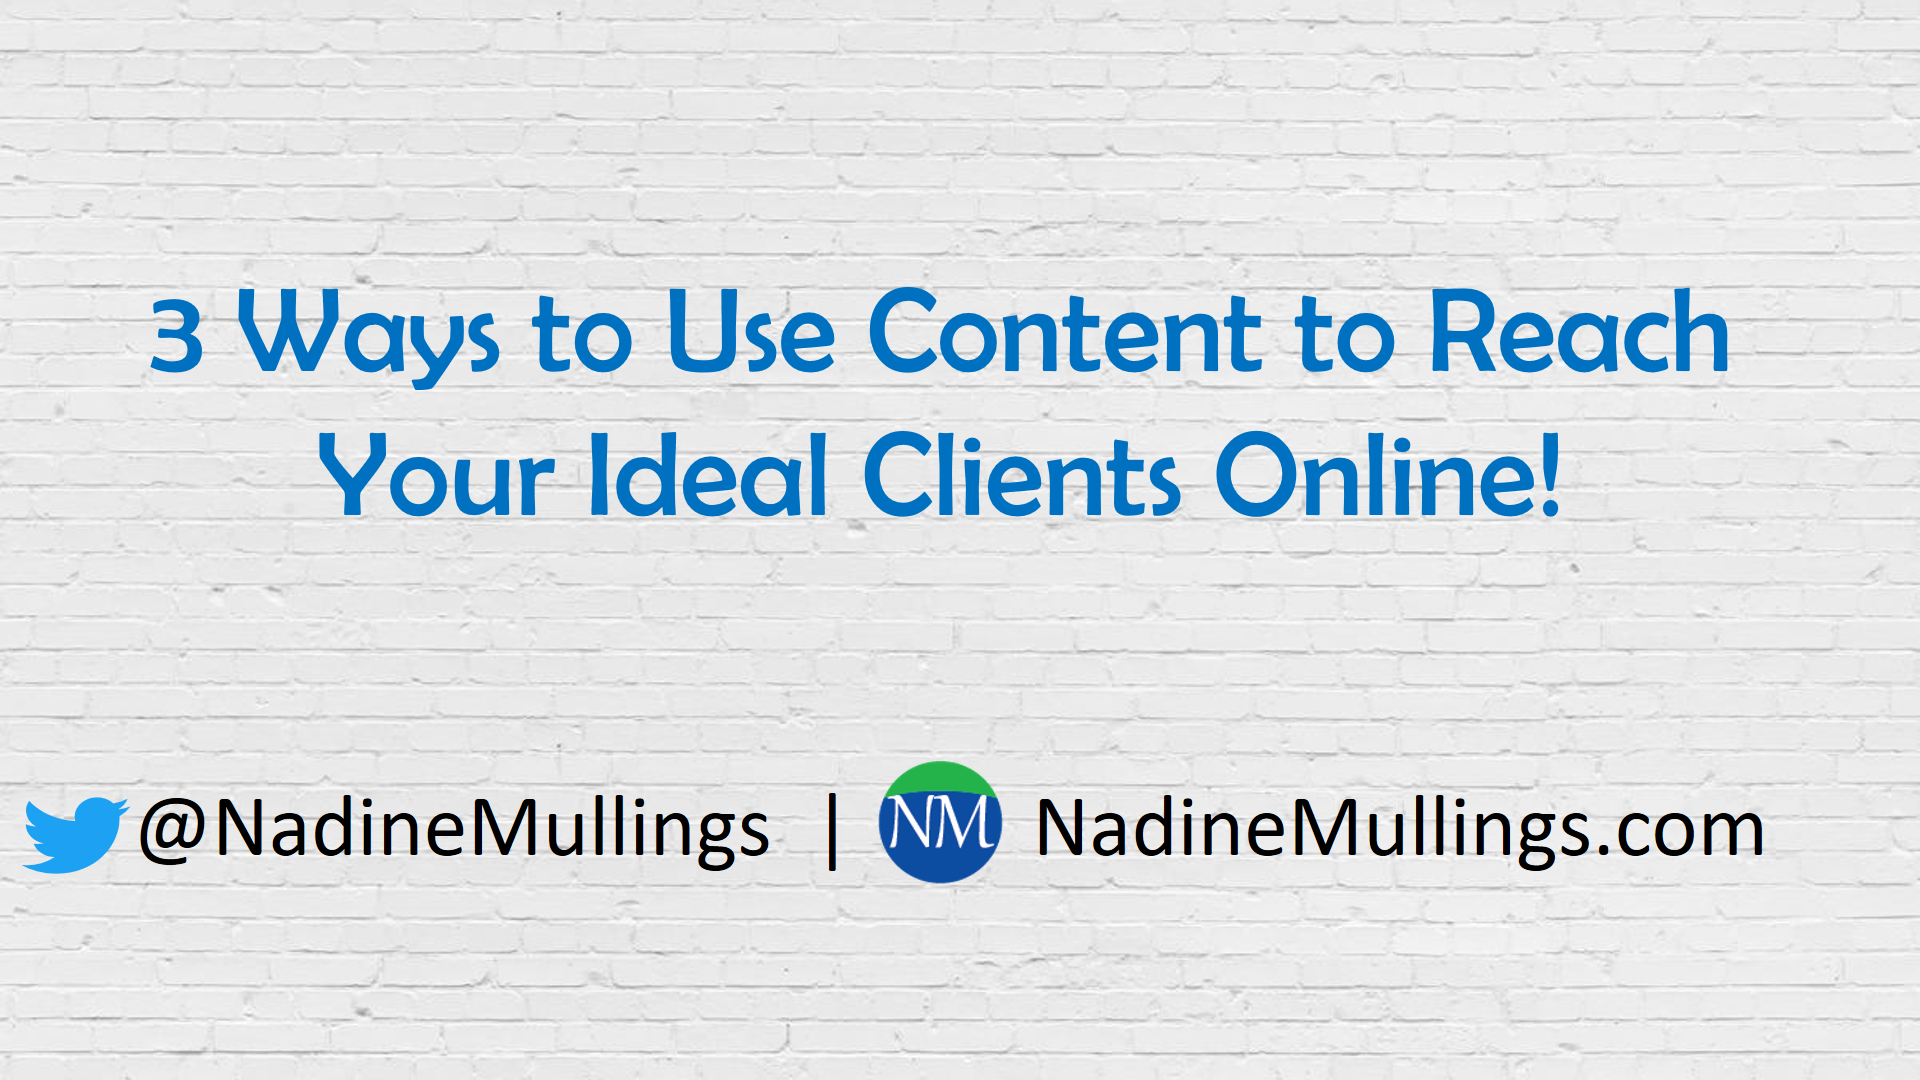 3 Ways to Use Content to Reach Your Ideal Clients Online